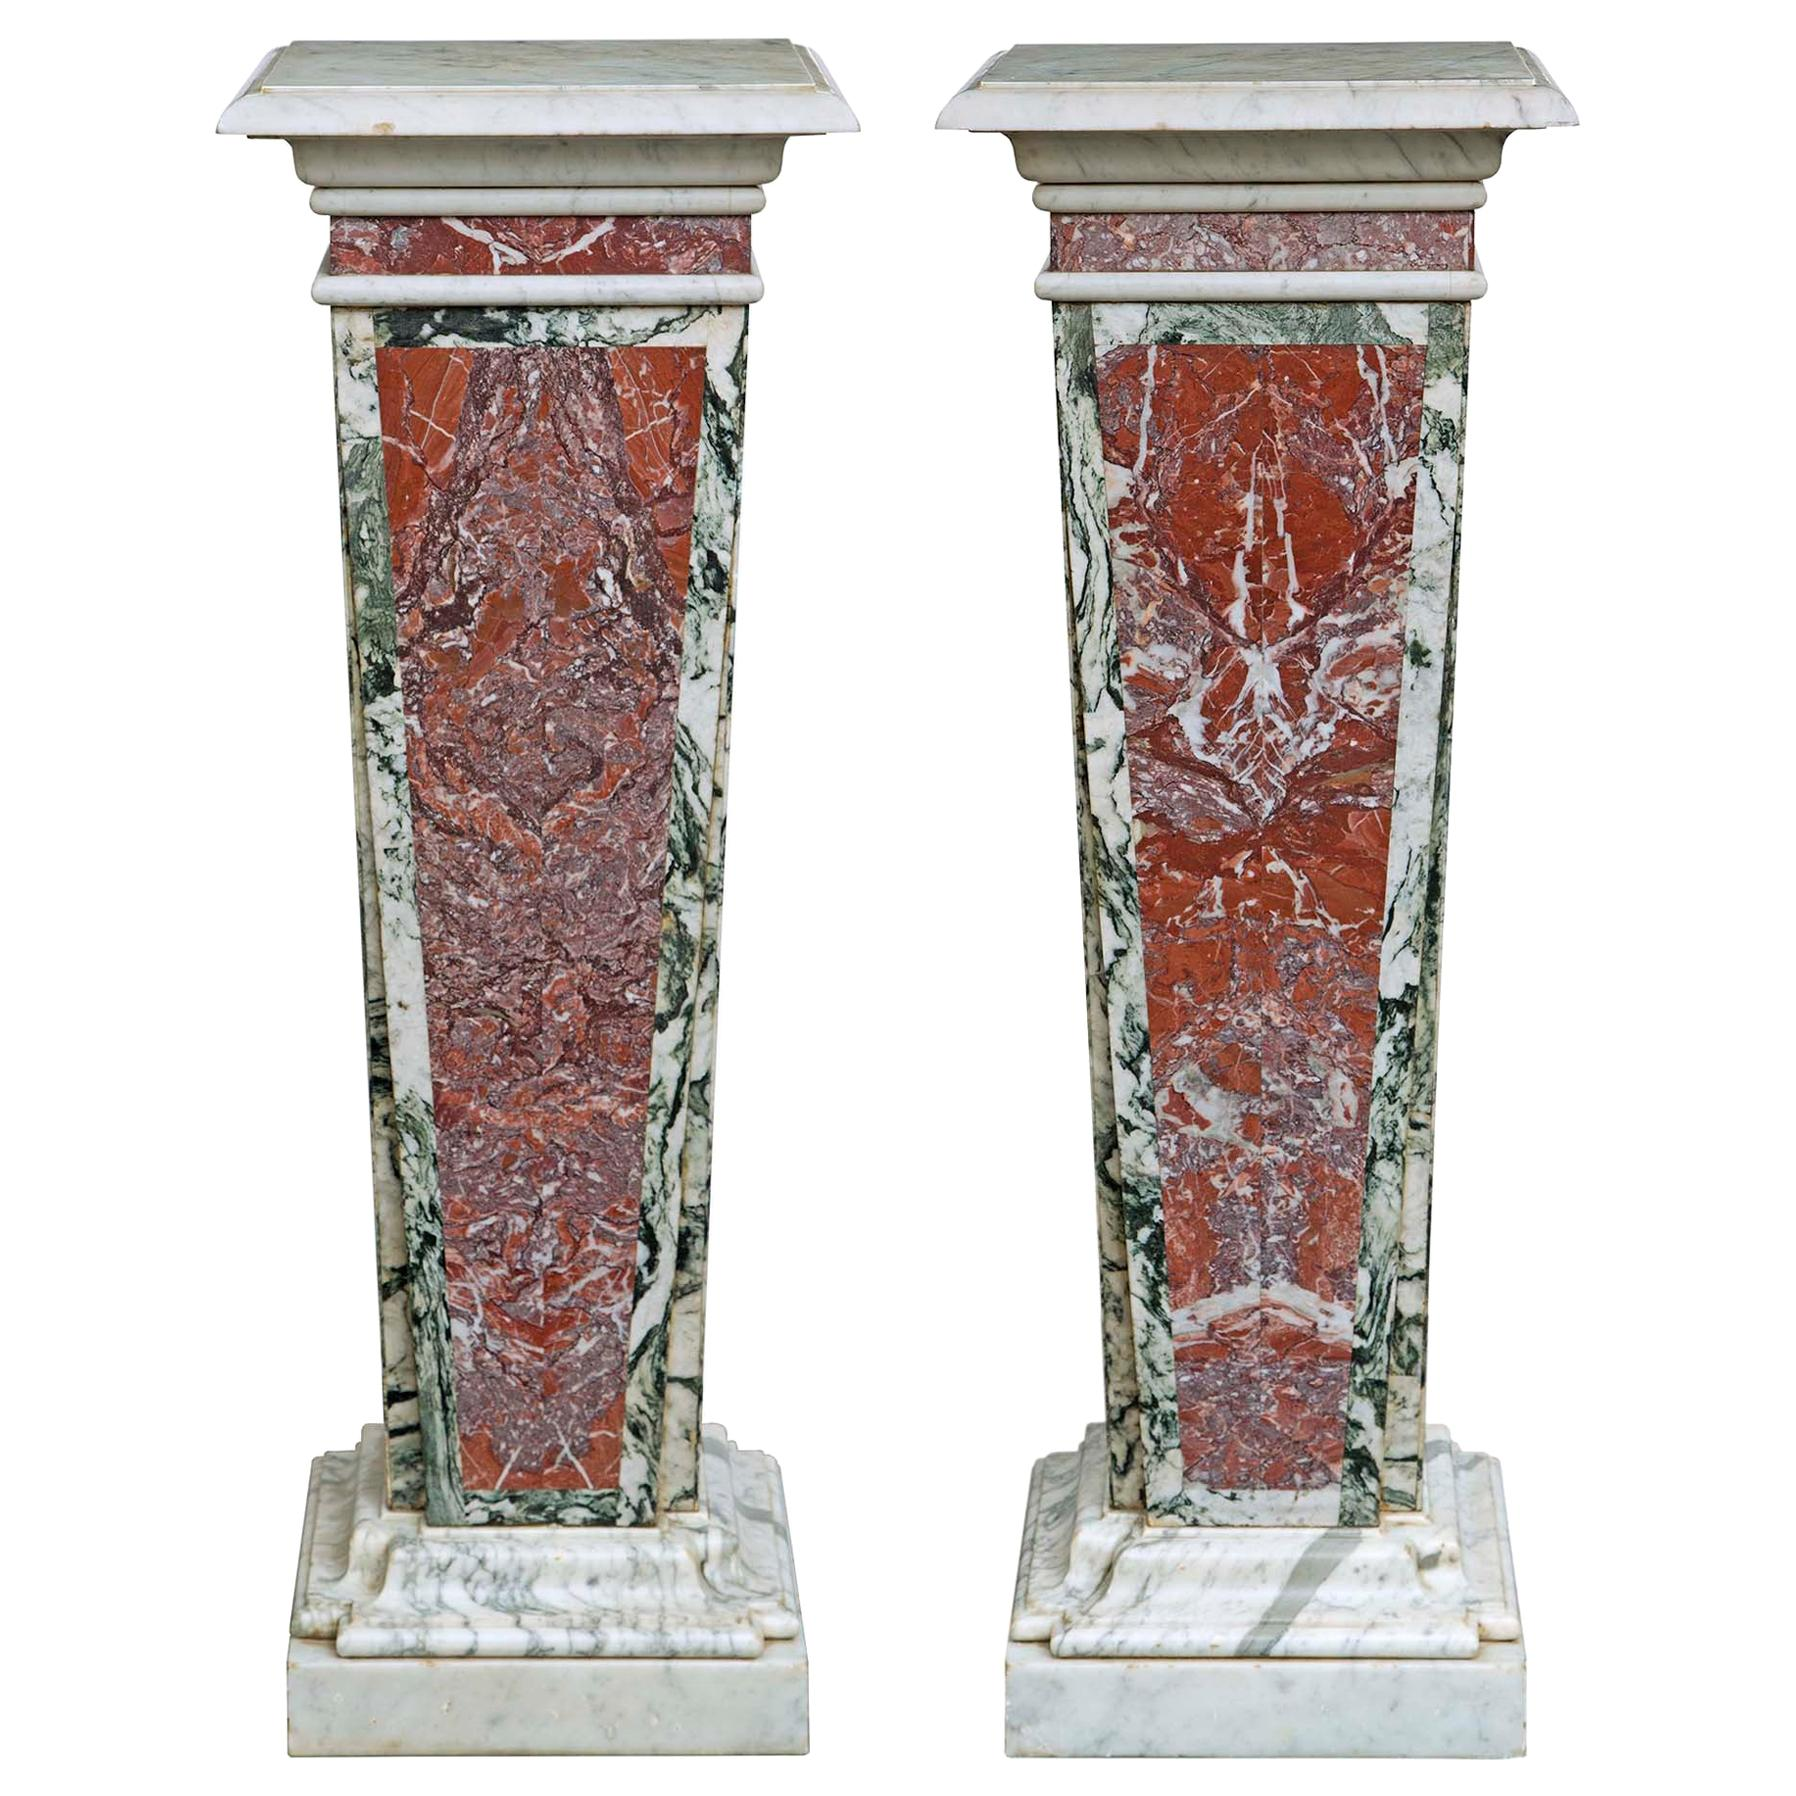 Pair of Italian 19th Century Neoclassical Style Marble Pedestals